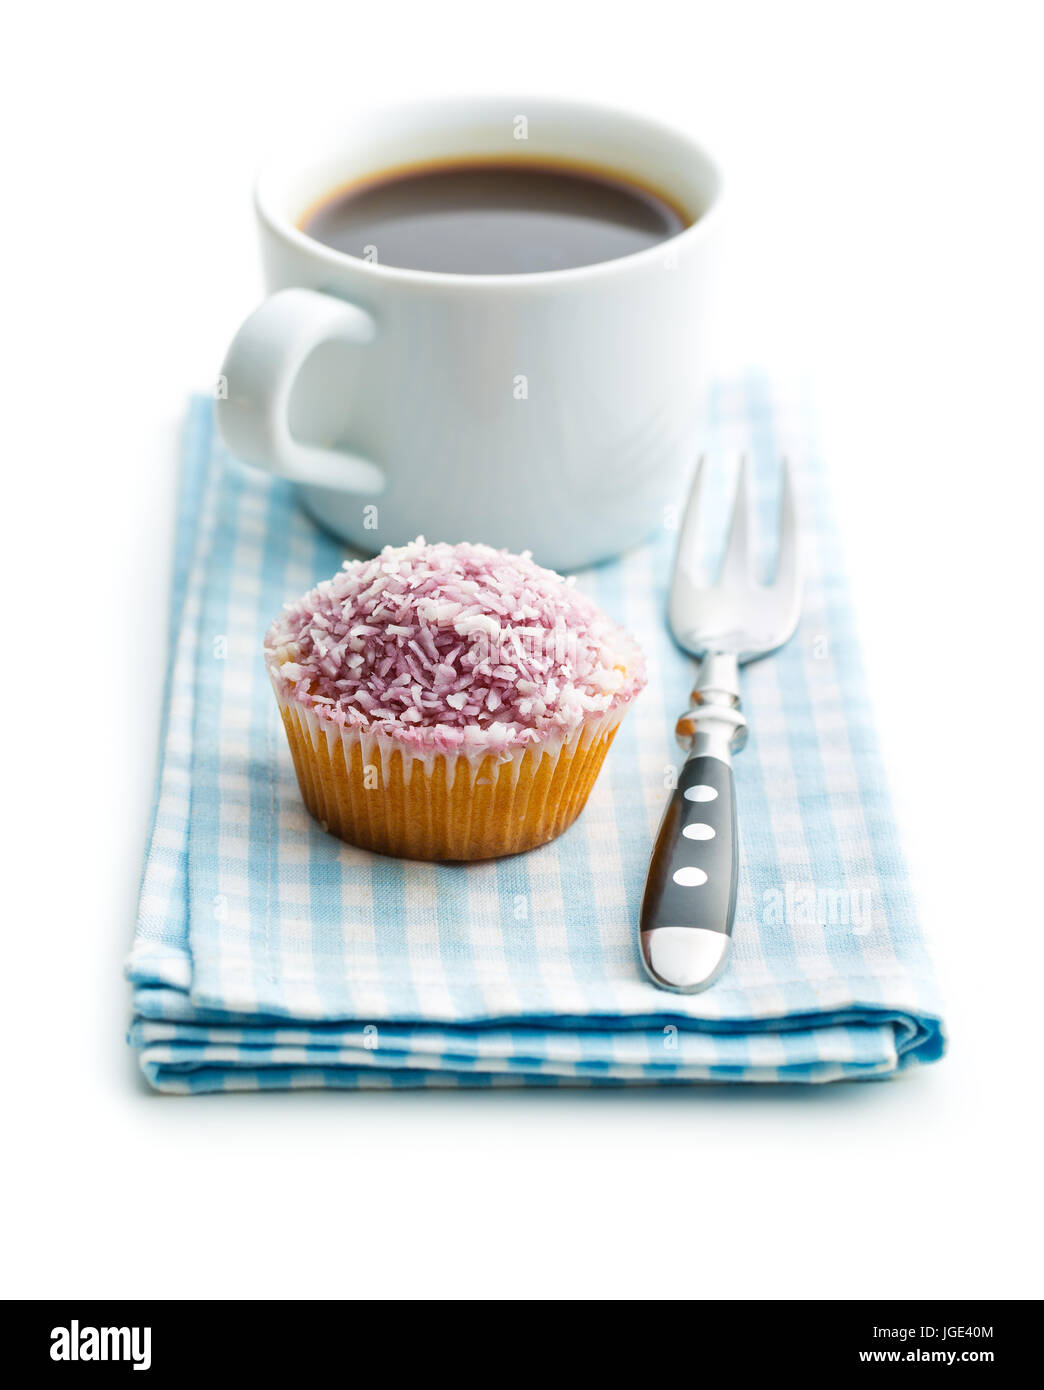 Cupcake and coffee cup isolated on white background. - Stock Image